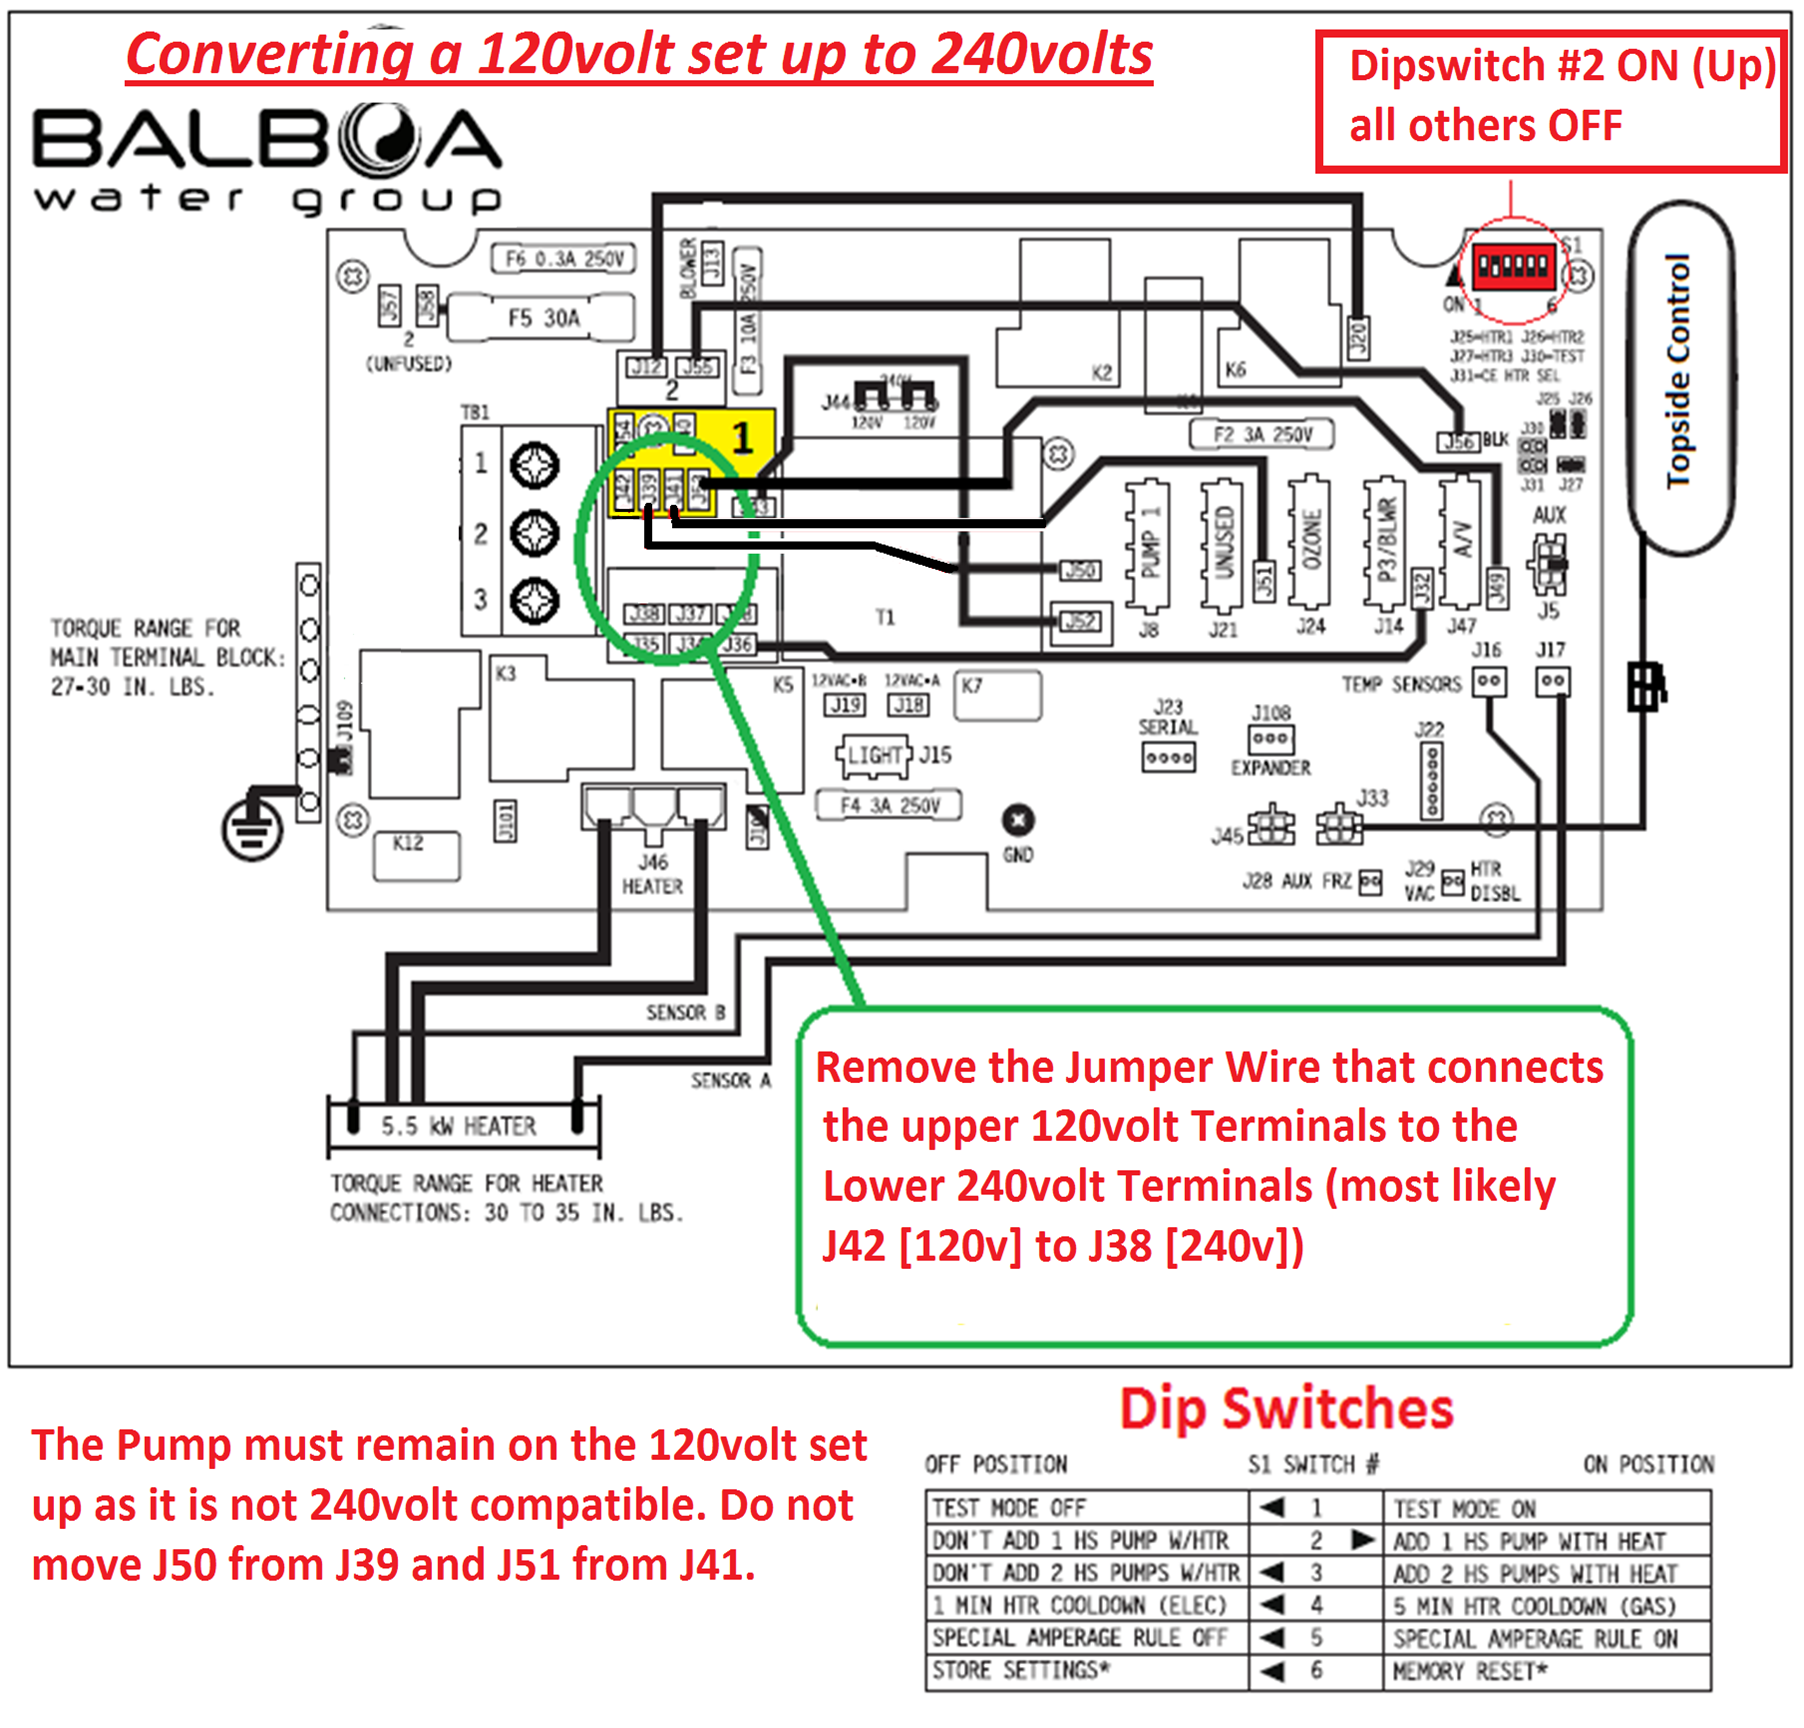 Electrical Installation - Converting a 120V Balboa BP to 240V